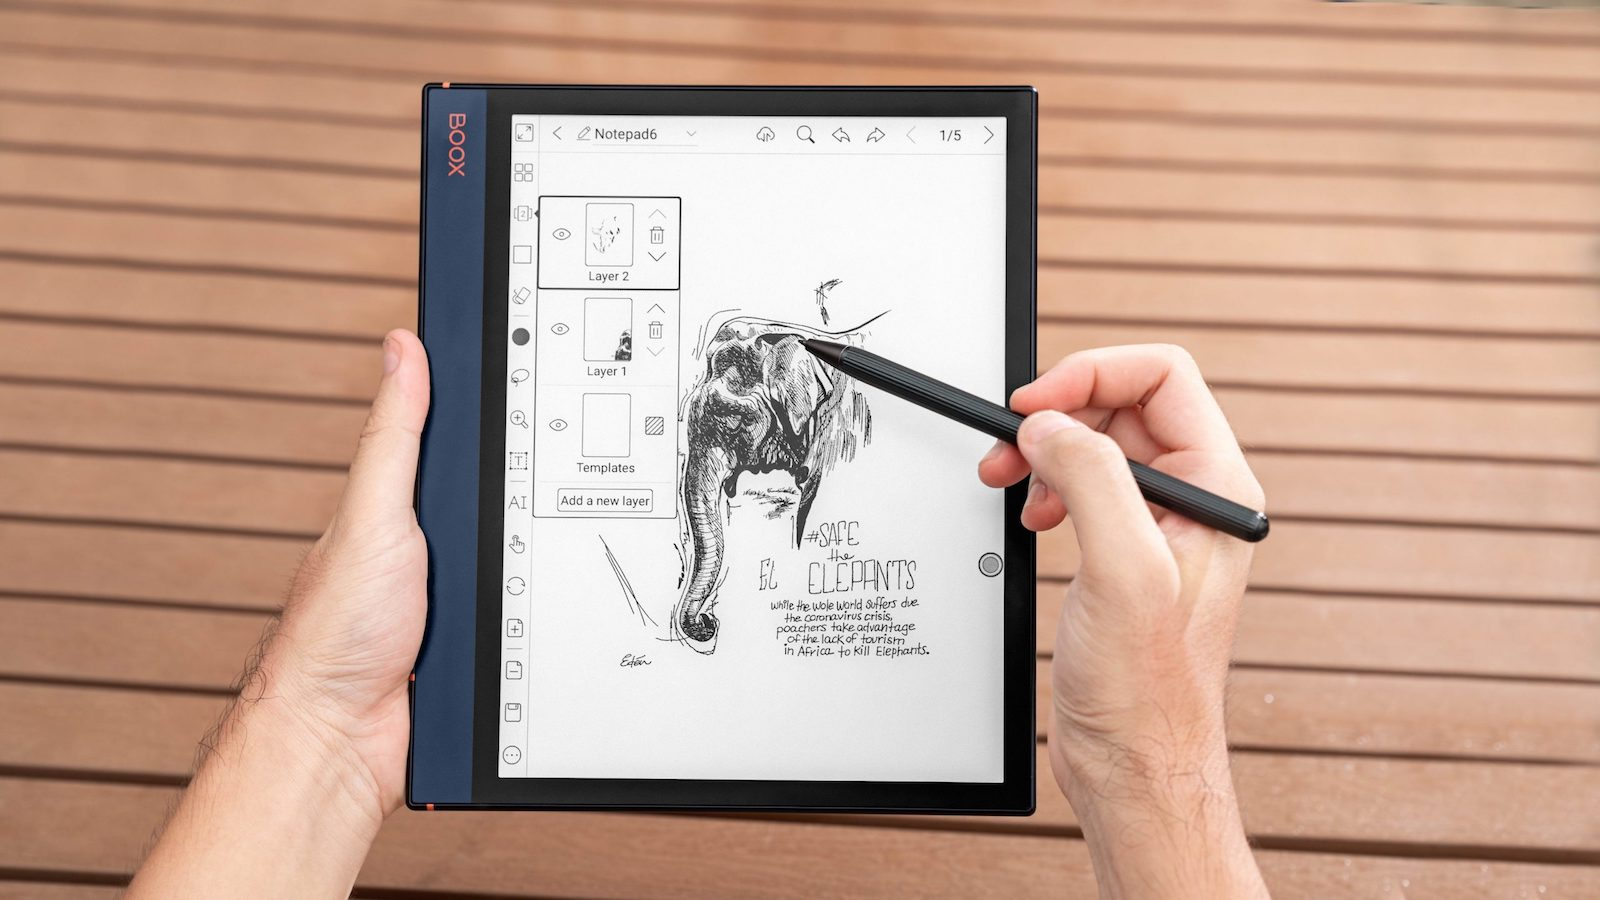 BOOX Note Air 10.3″ E-Ink tablet features an adjustable front light and 5.8 mm thickness